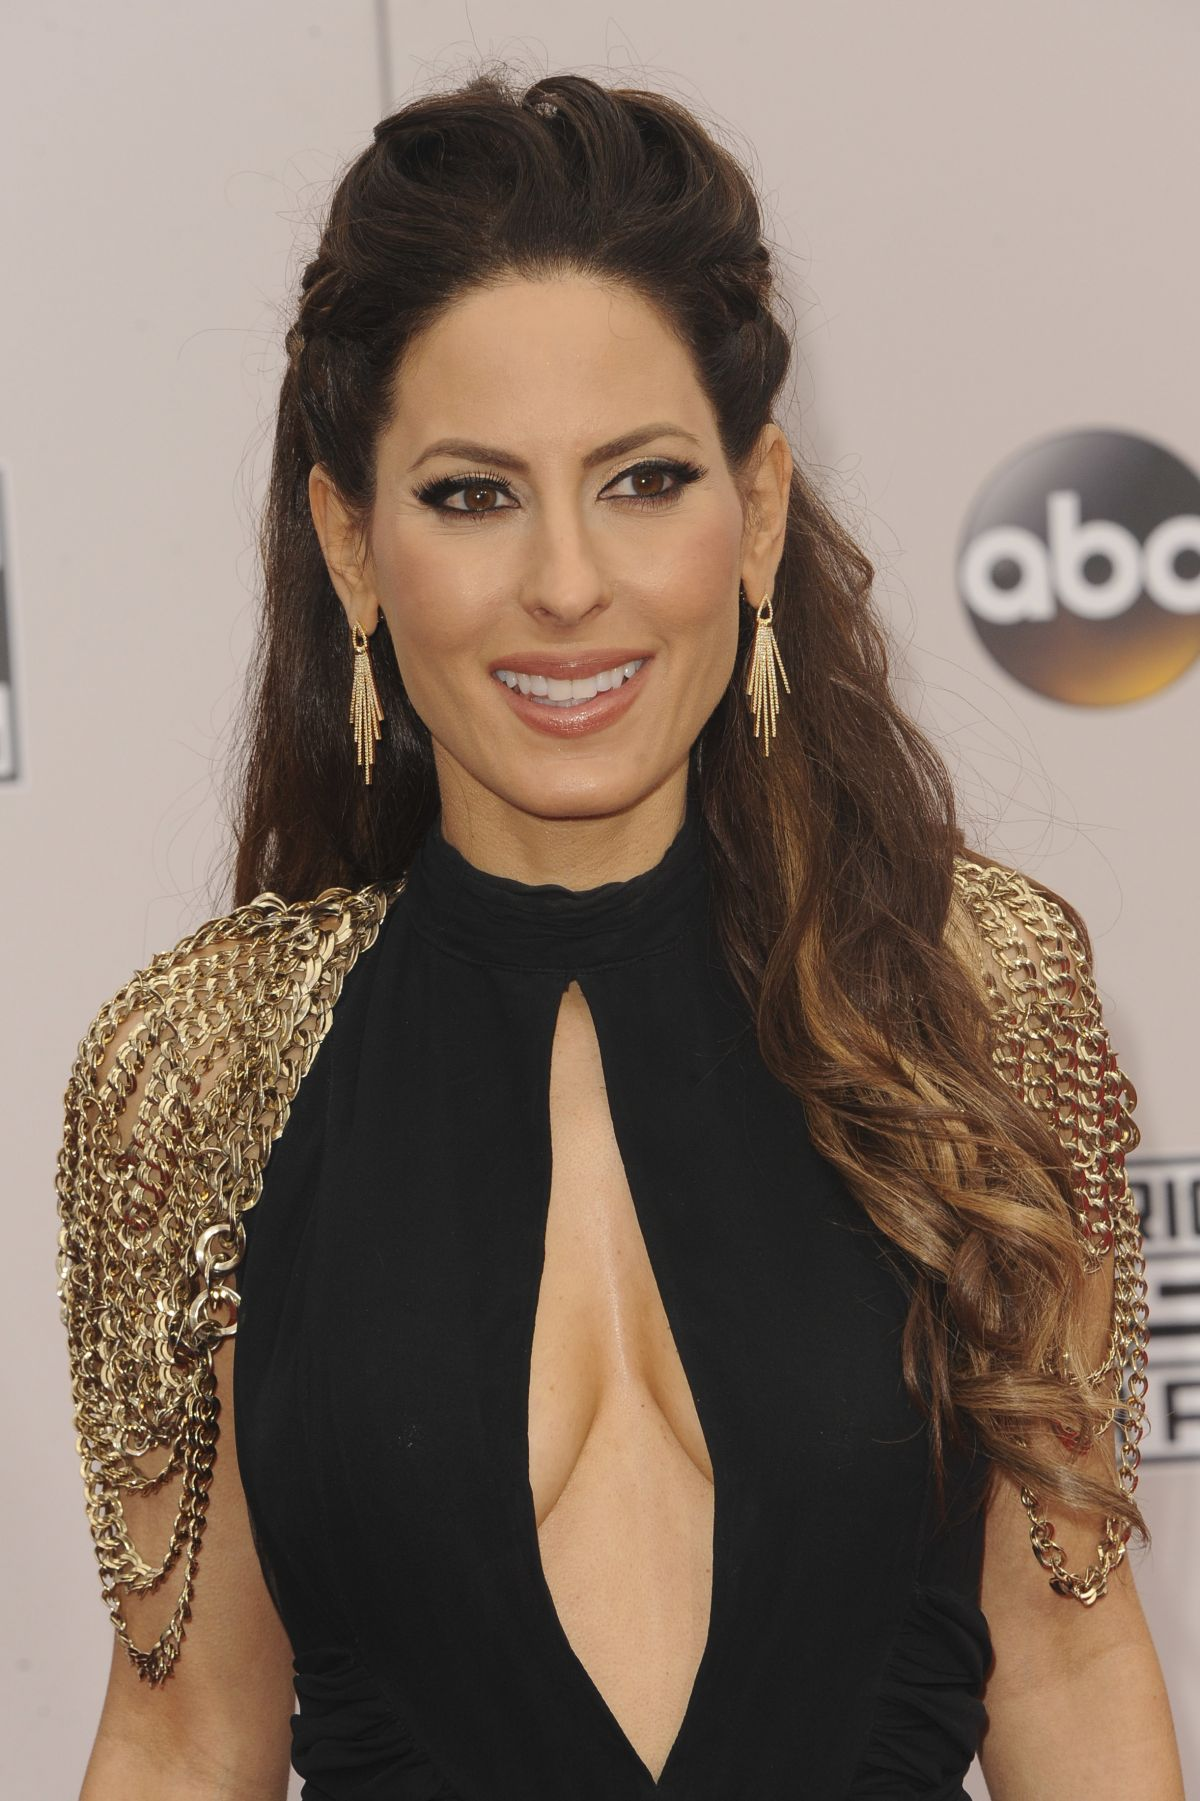 KERRI KASEM at 2016 American Music Awards at The Microsoft Theater in Los Angeles 11/20/2016